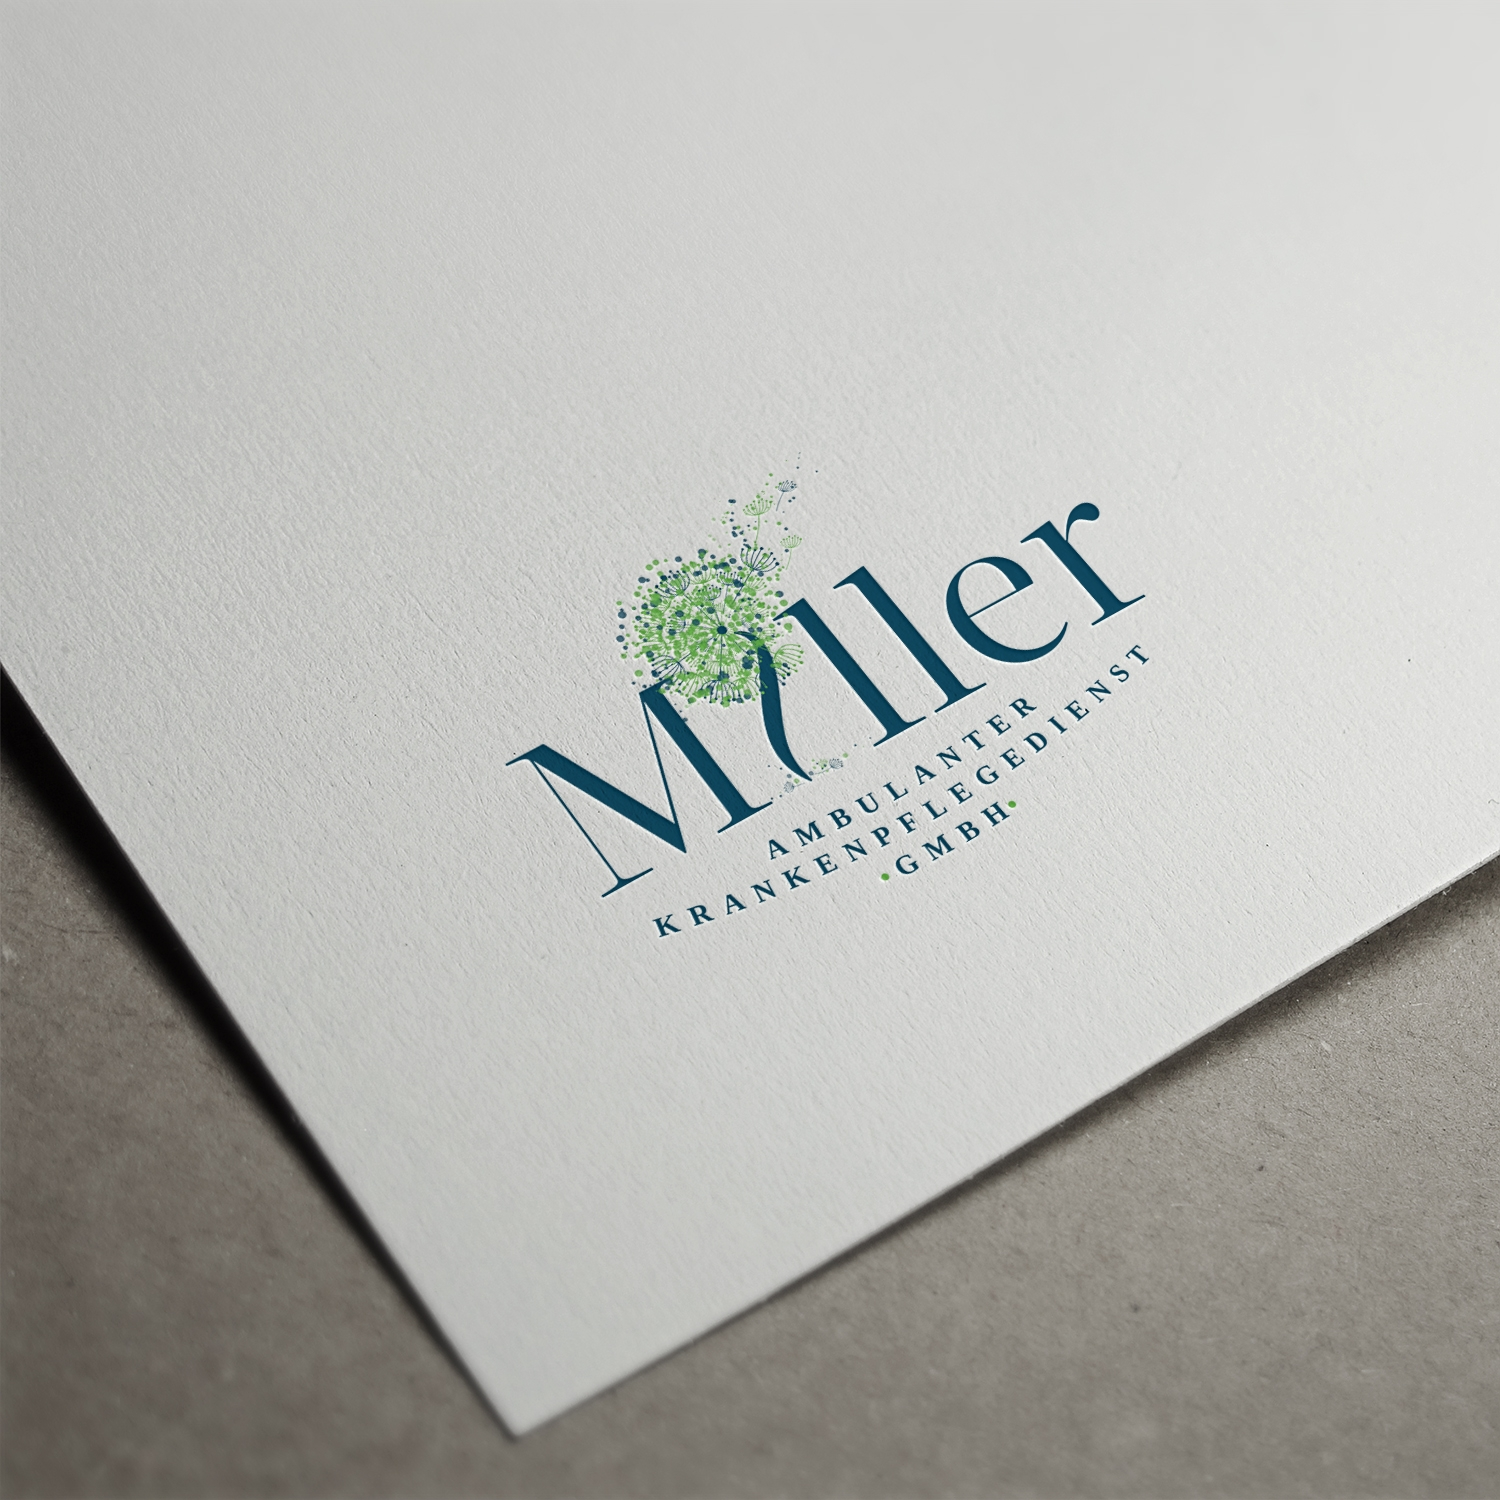 Logo and Stationery designs done for an outpatient nursing service